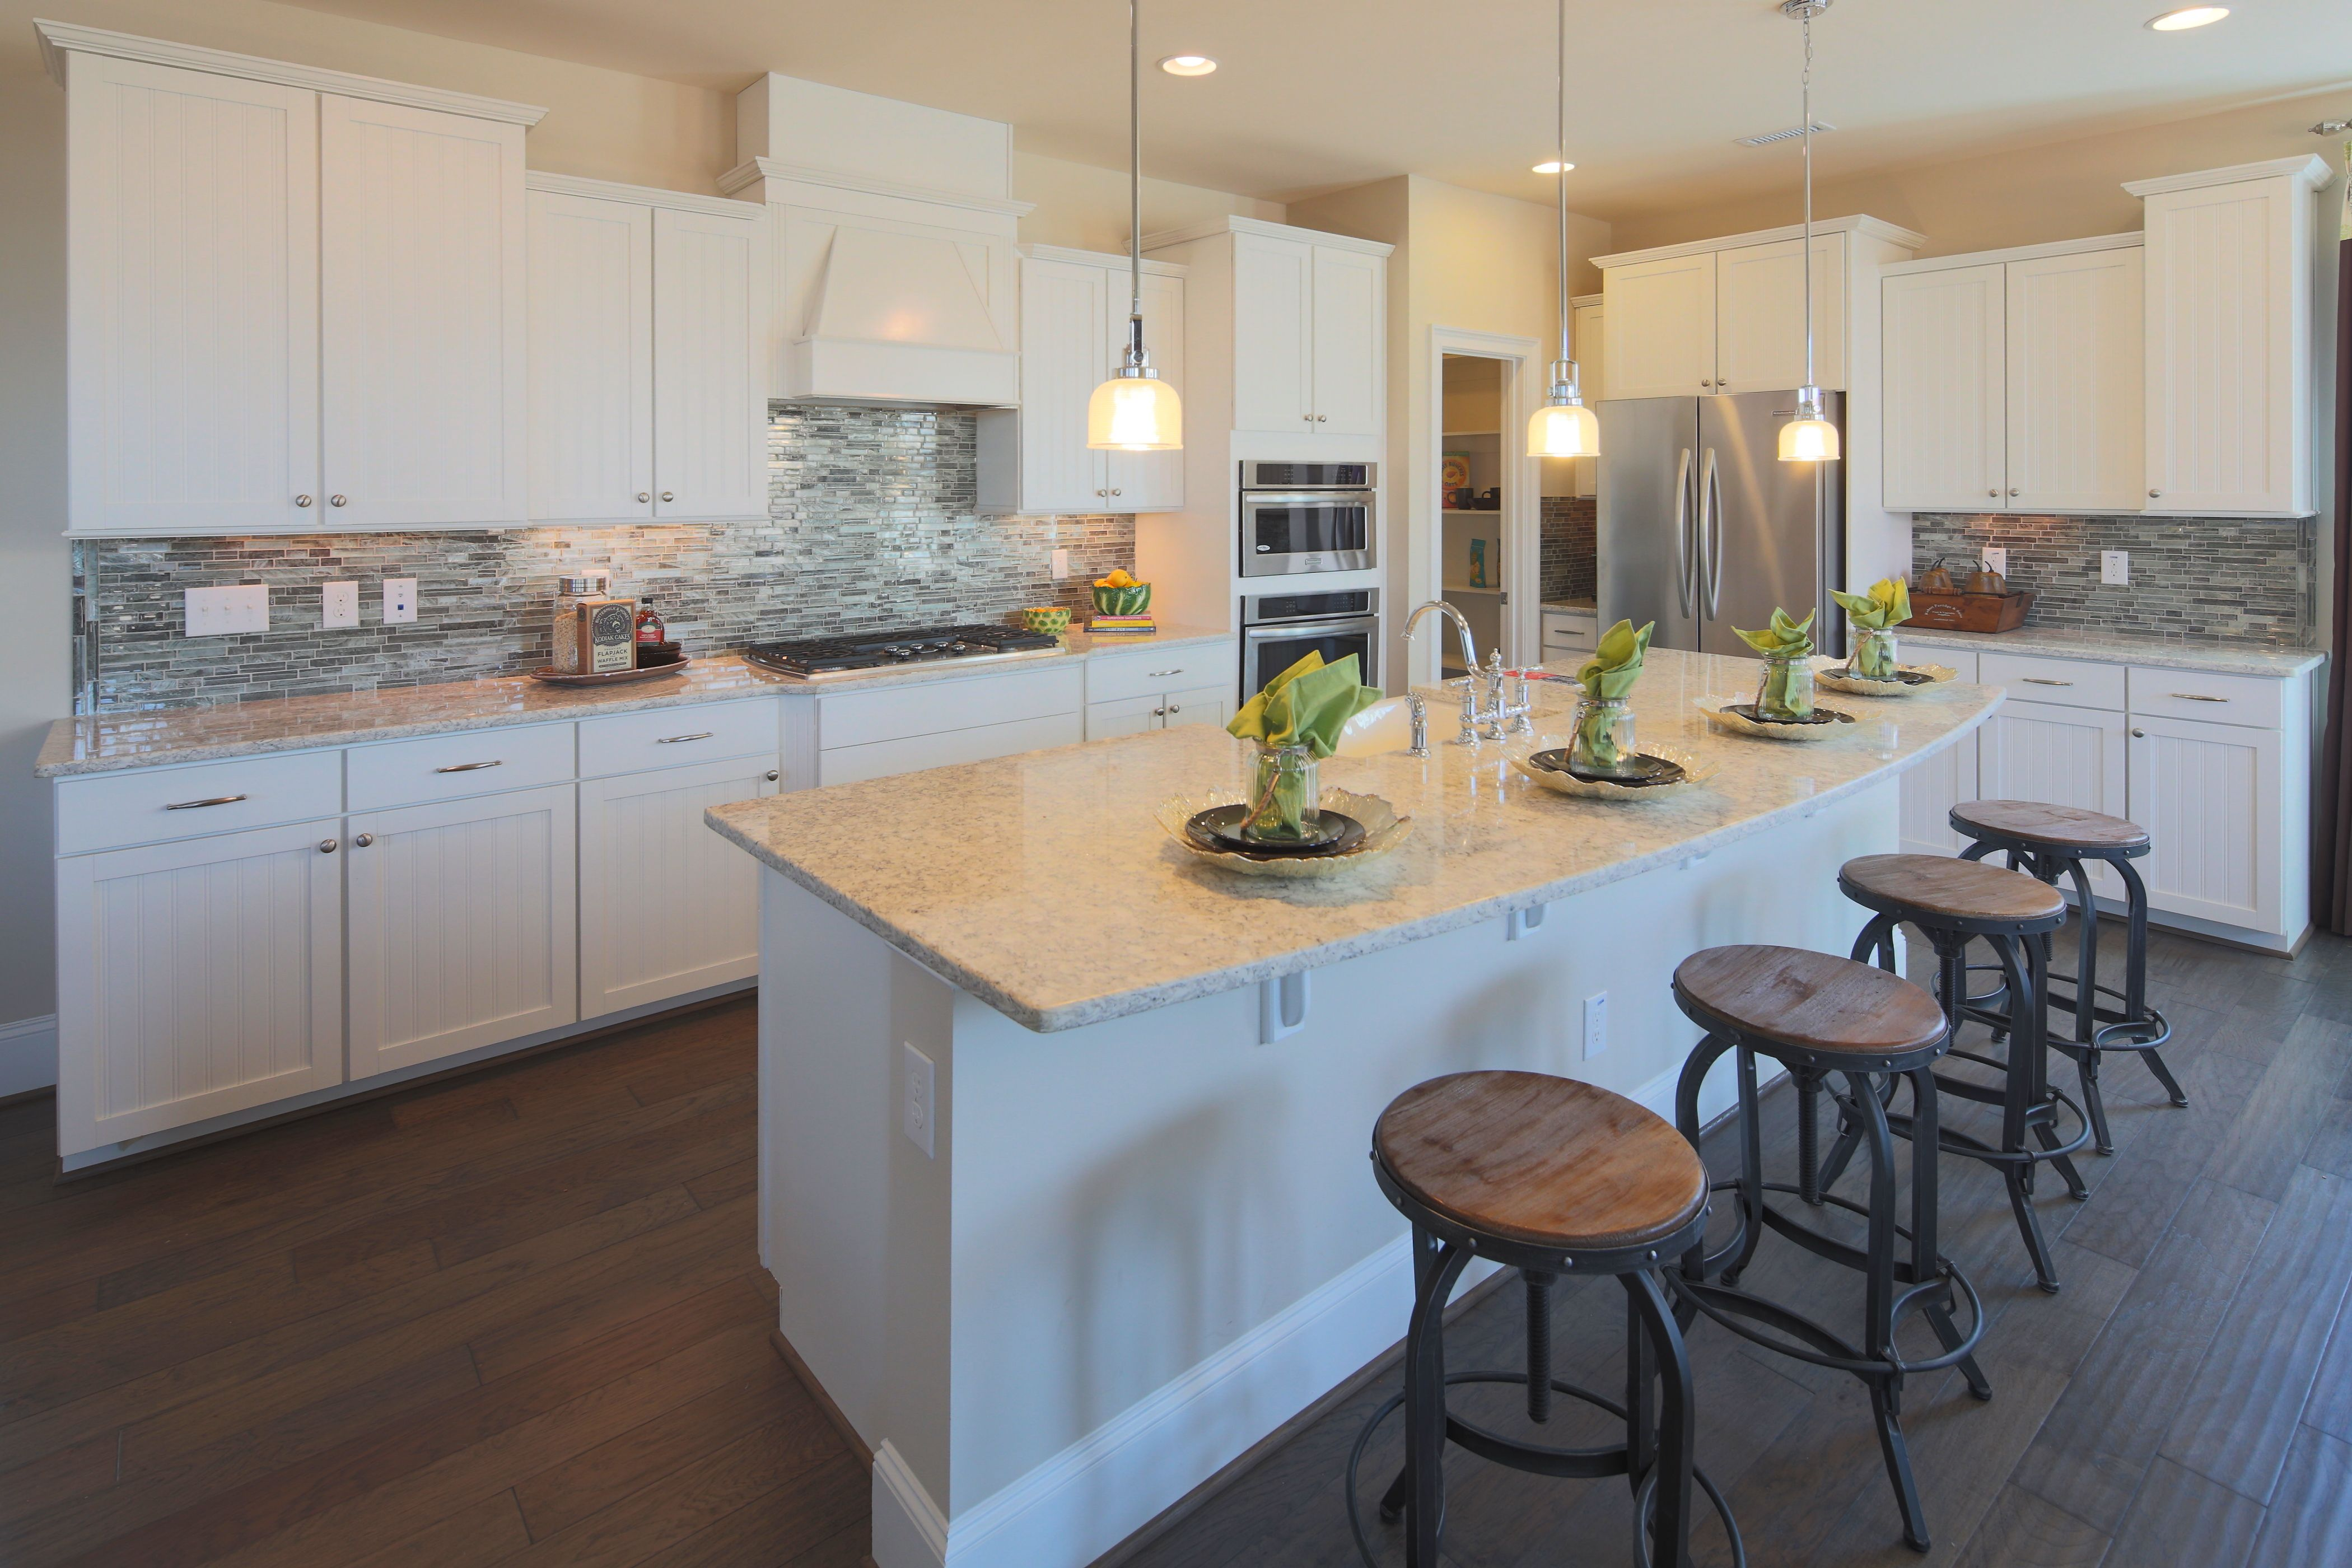 Love The Kitchen By Beazer Homes In The Oakwood Plan At Briar Chapel Kitchen Inspirations Home Kitchens Home Decor Styles